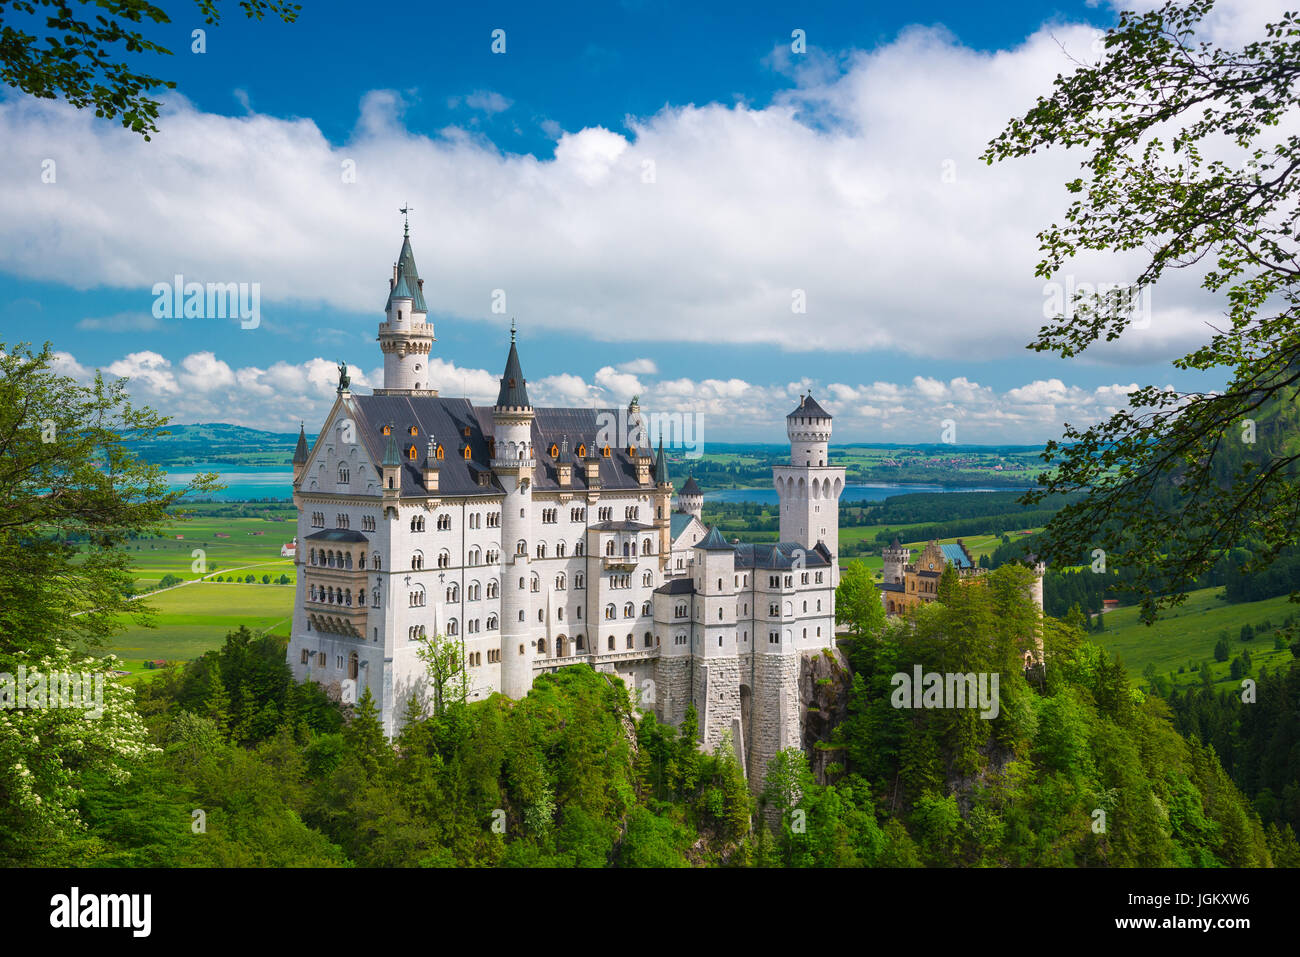 Neuschwanstein castle in a summer day in Germany. - Stock Image